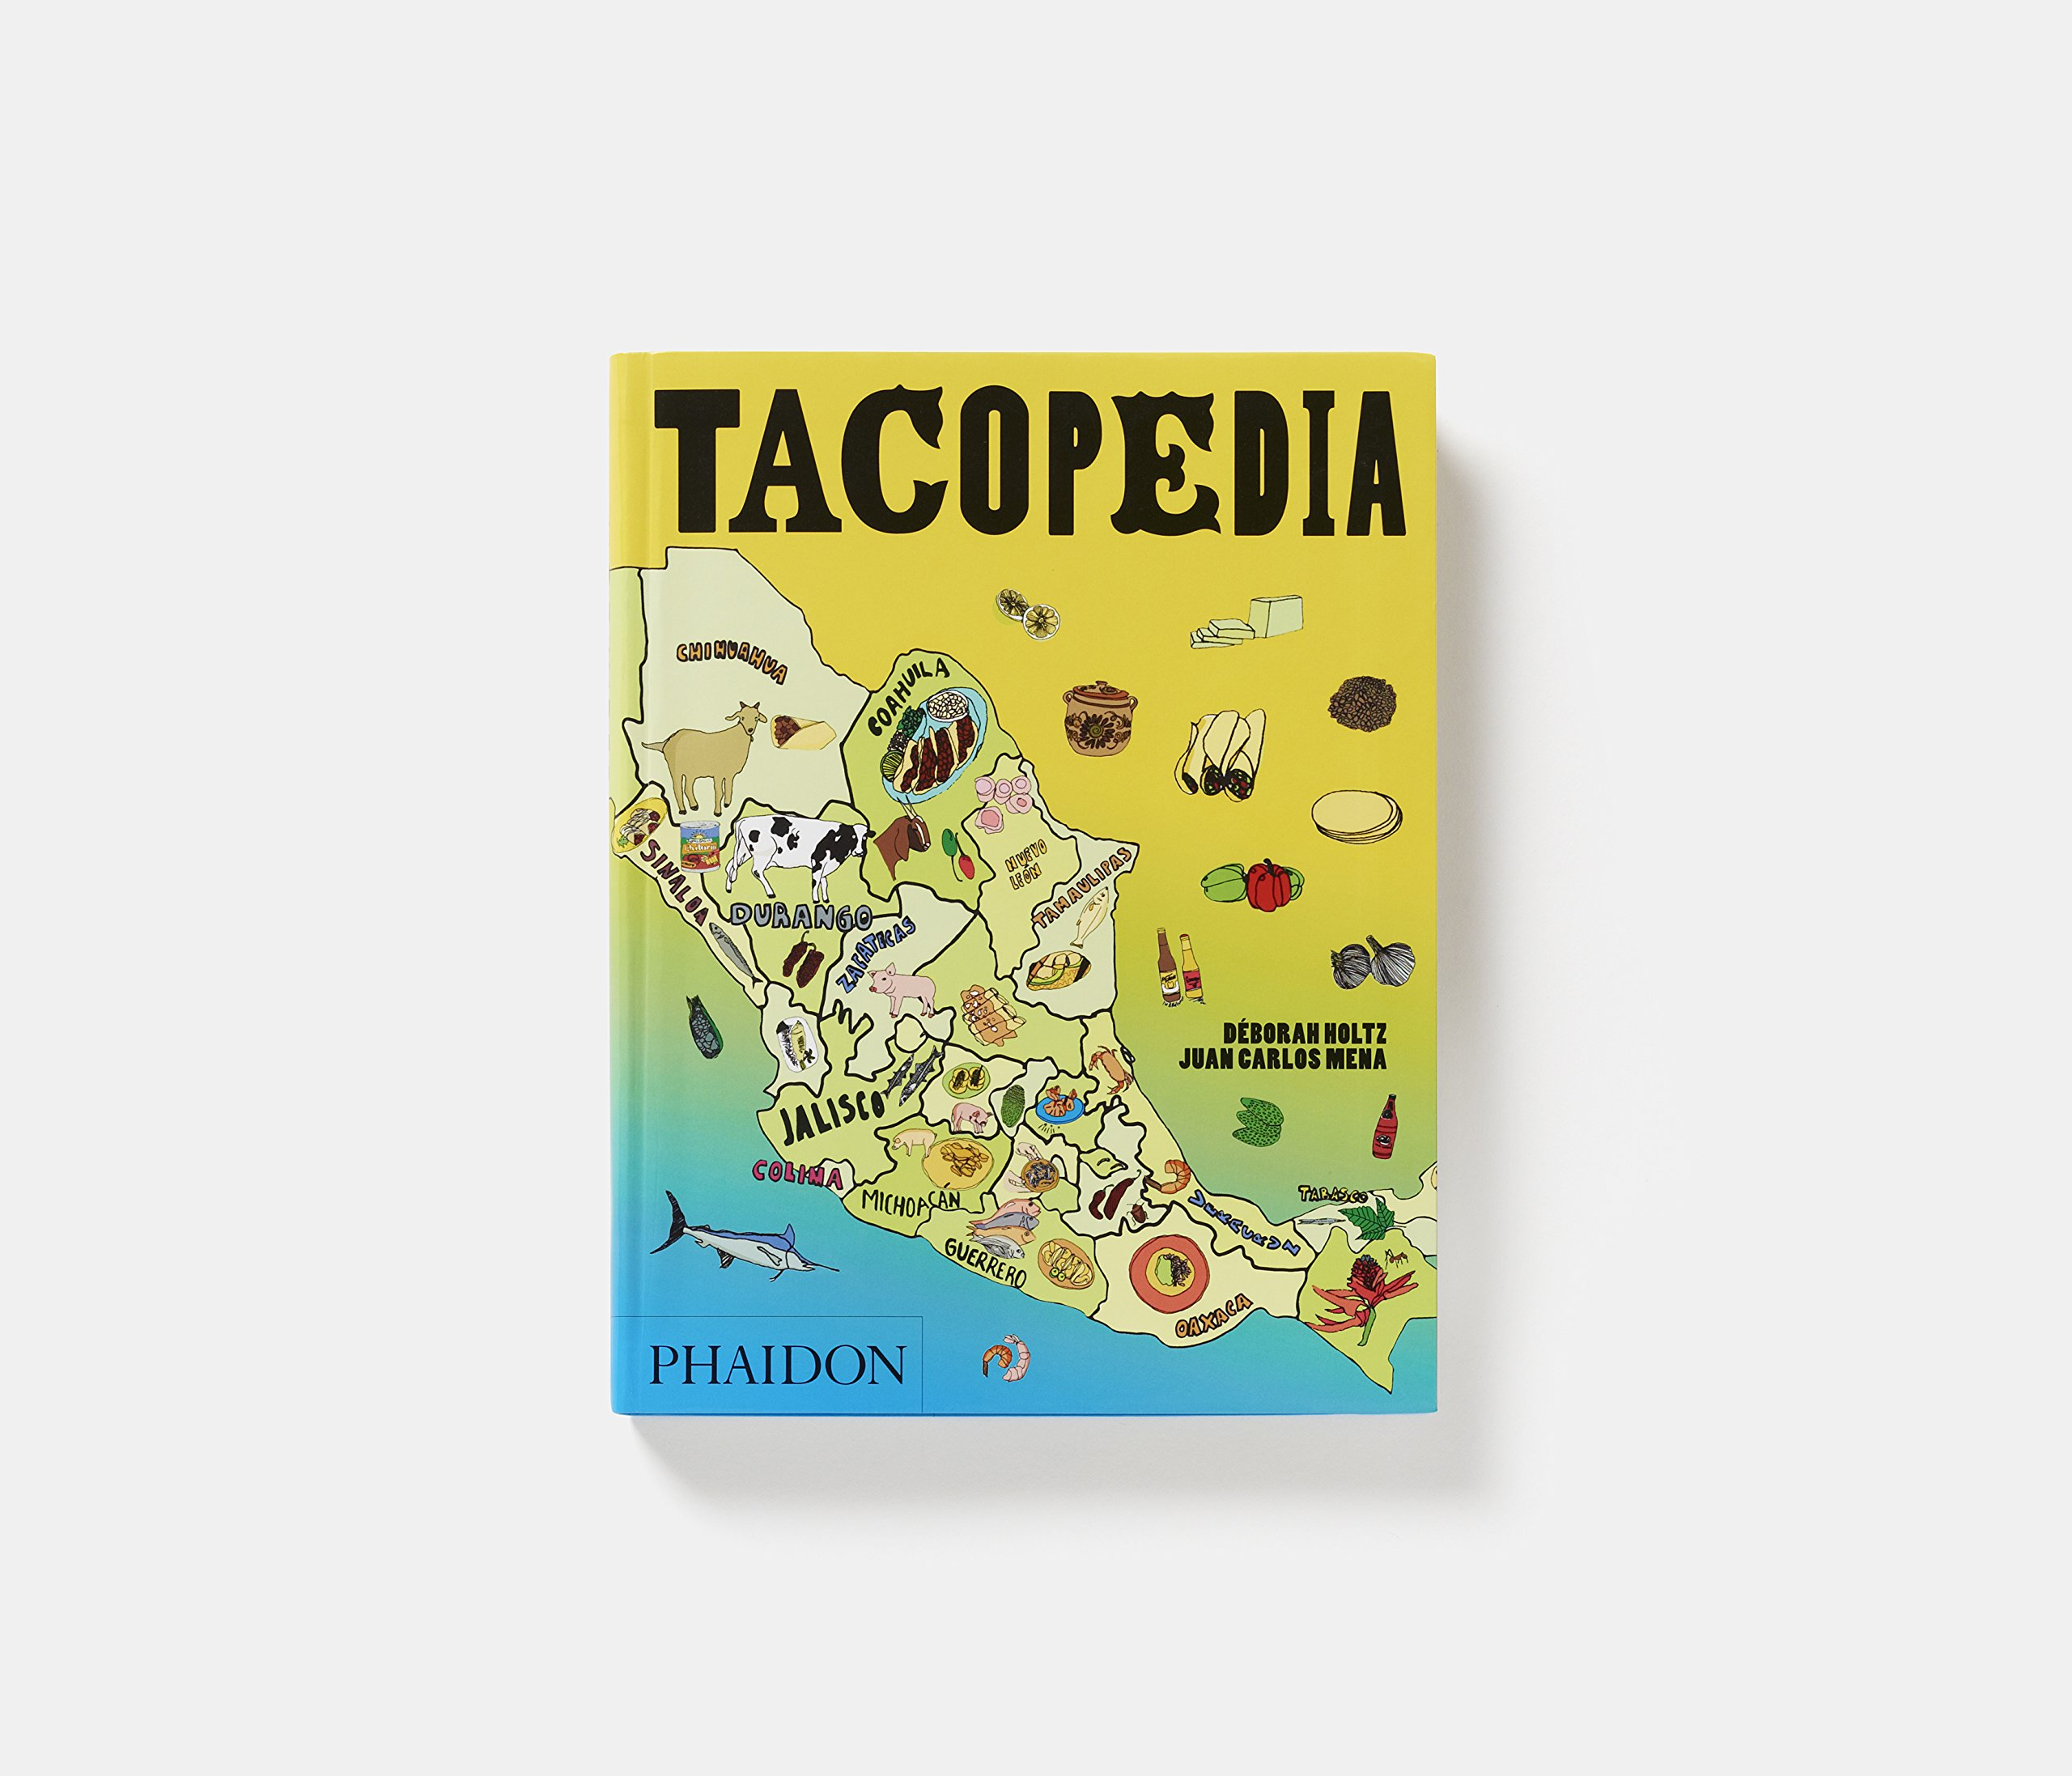 Tacopedia. The Taco Encyclopedia: Amazon.es: Deborah Holtz ; Juan Carlos Mena: Libros en idiomas extranjeros